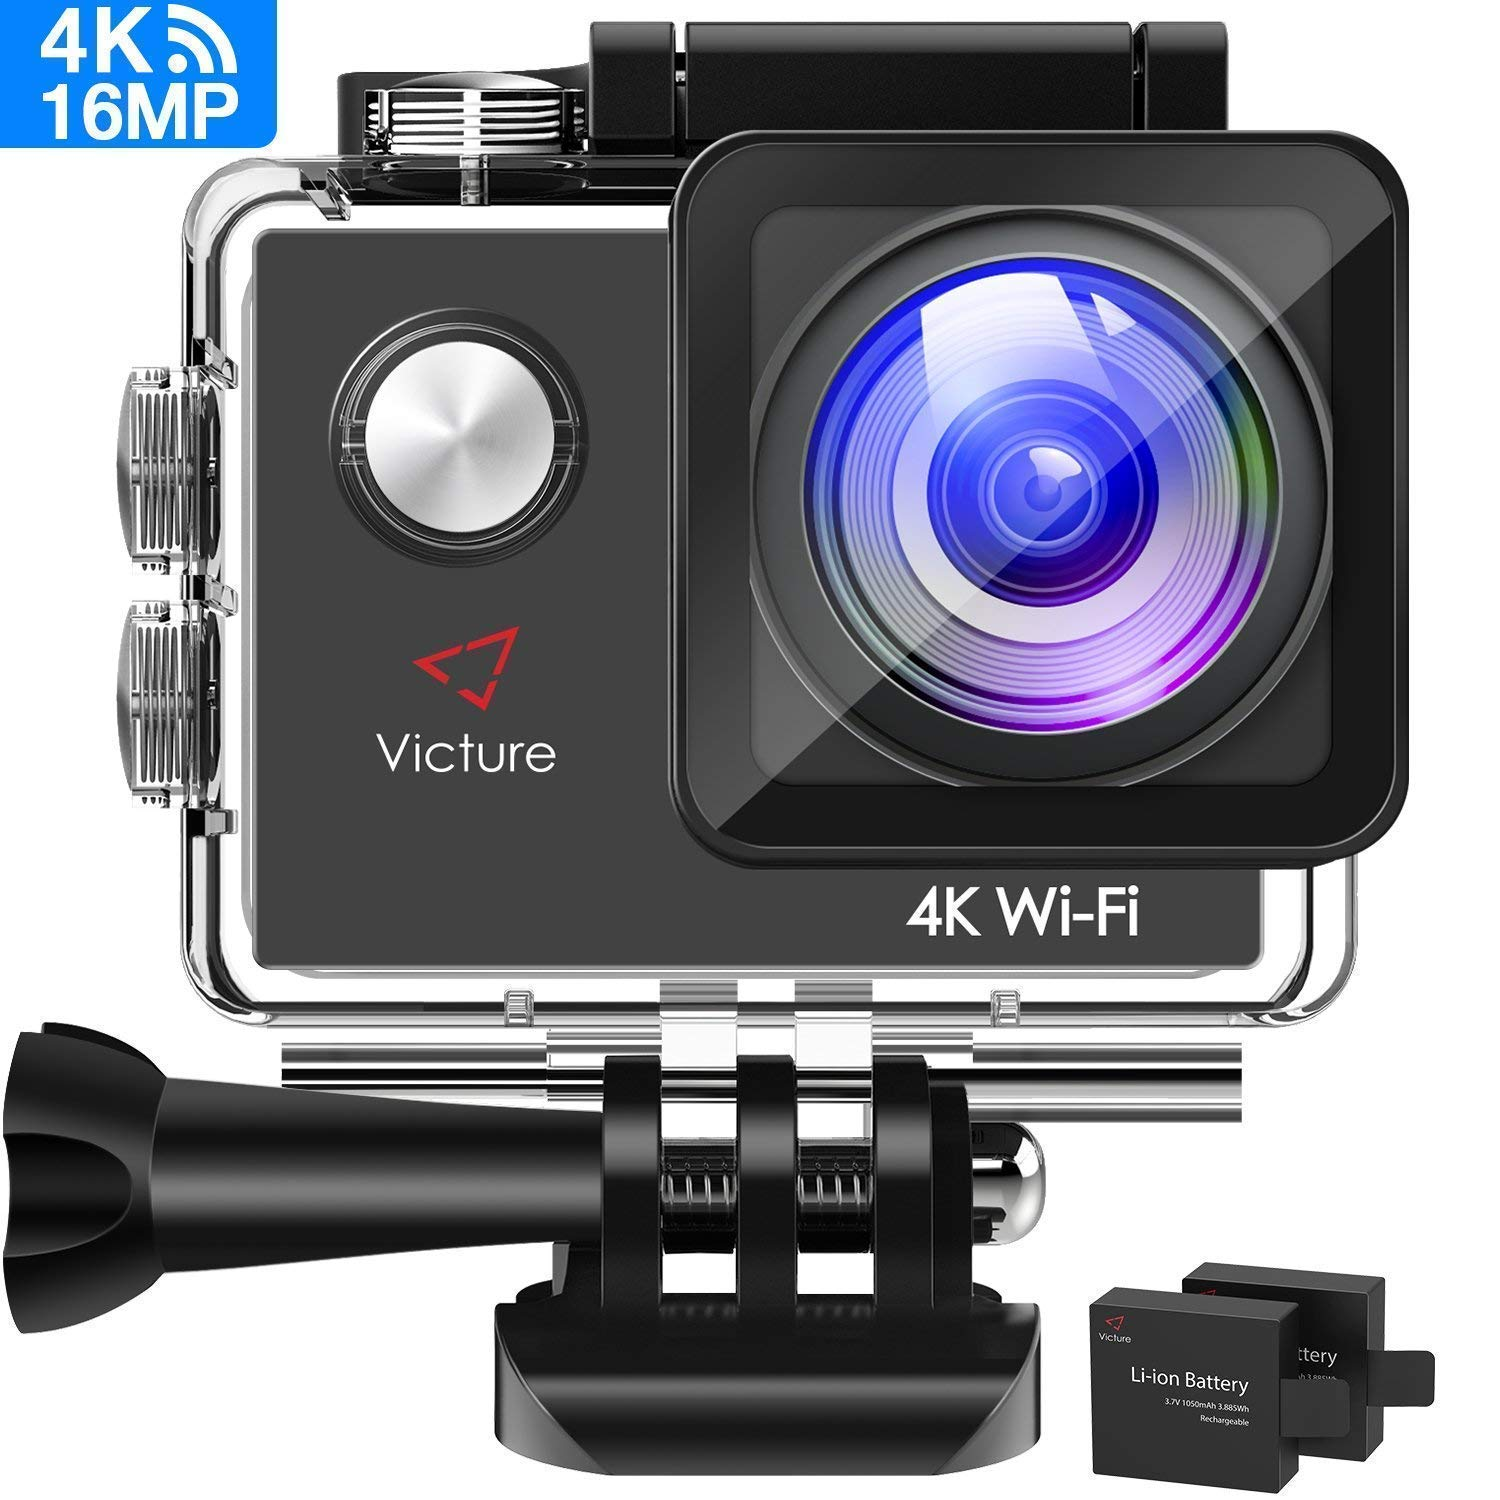 Victure AC600 4K 16MP Action Camera PC Webcam 30M Underwater Recording Camera with 170° Wide Angle Lens WiFi Sports Video Camera with 2 1050mAh Rechargeable Batteries and Mounting Accessories Kit